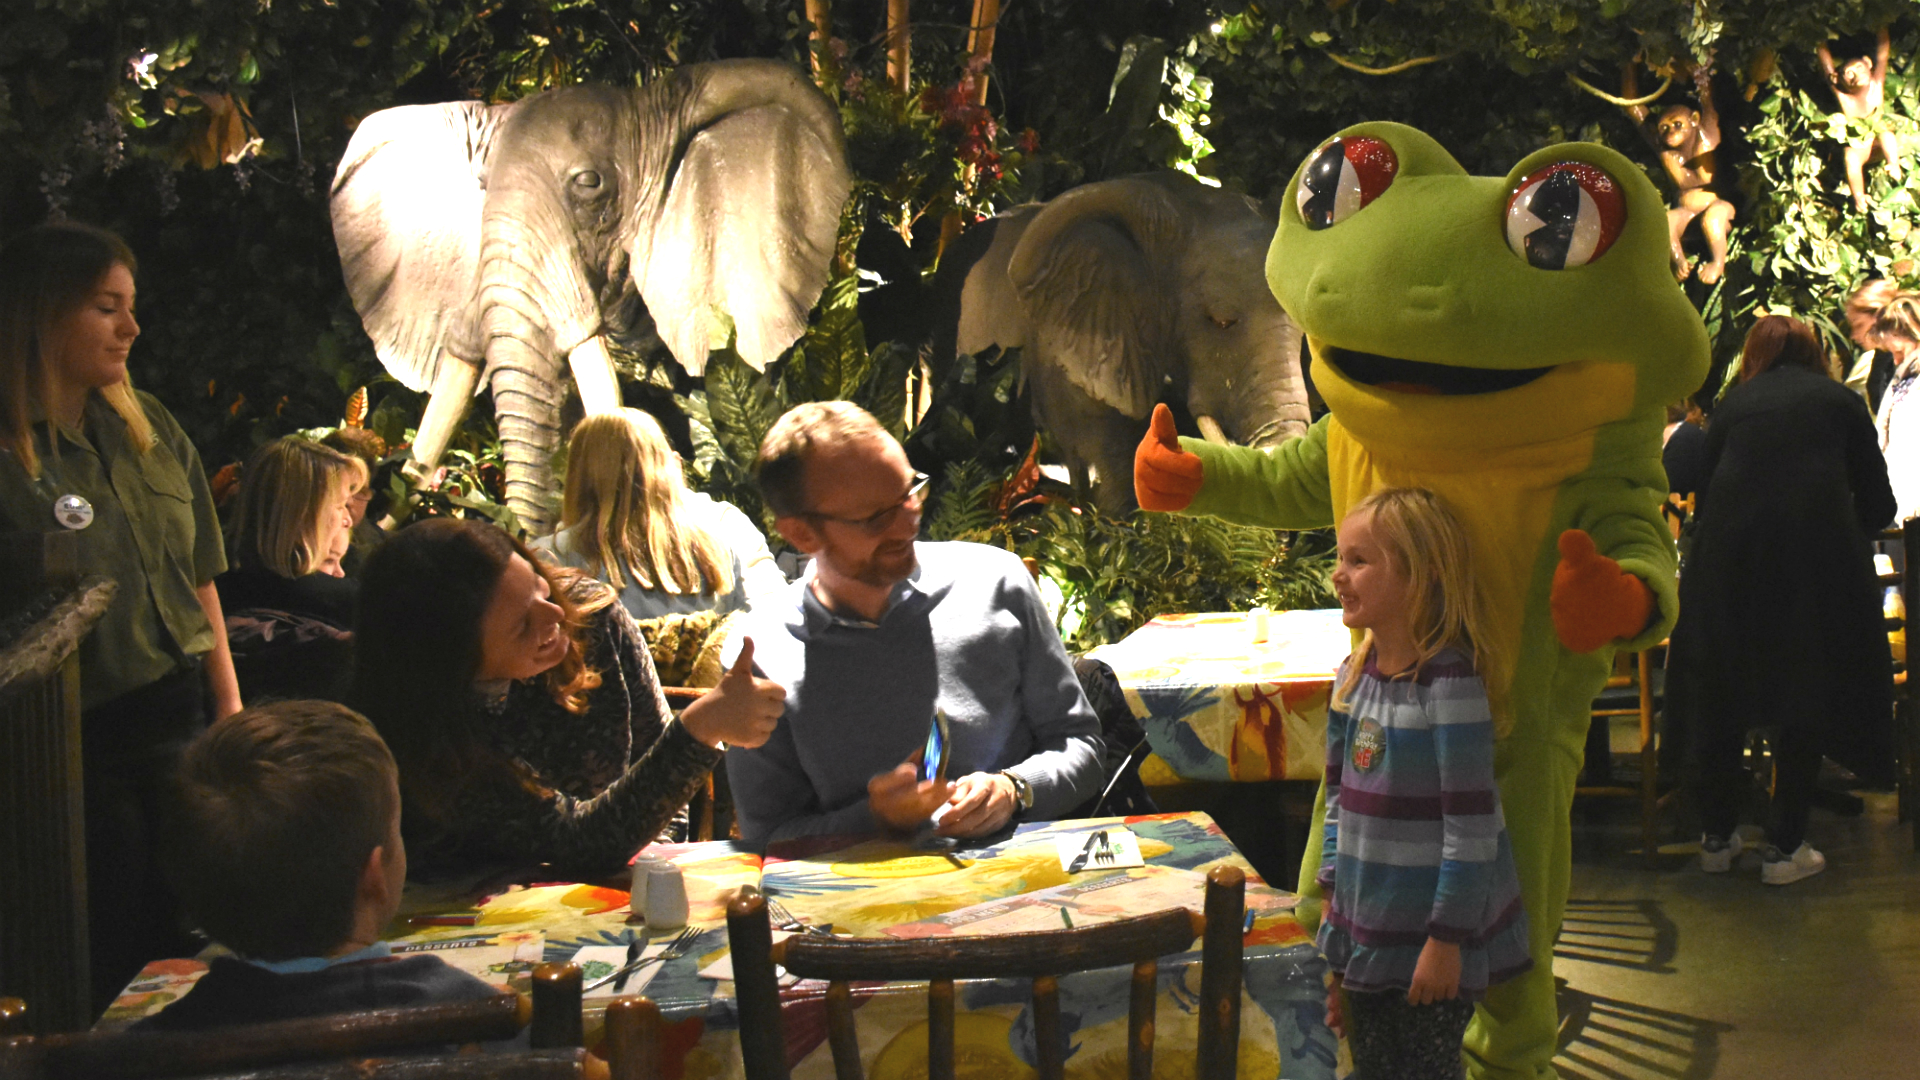 Children's entertainers and rainforest animals at The Rainforest Cafe